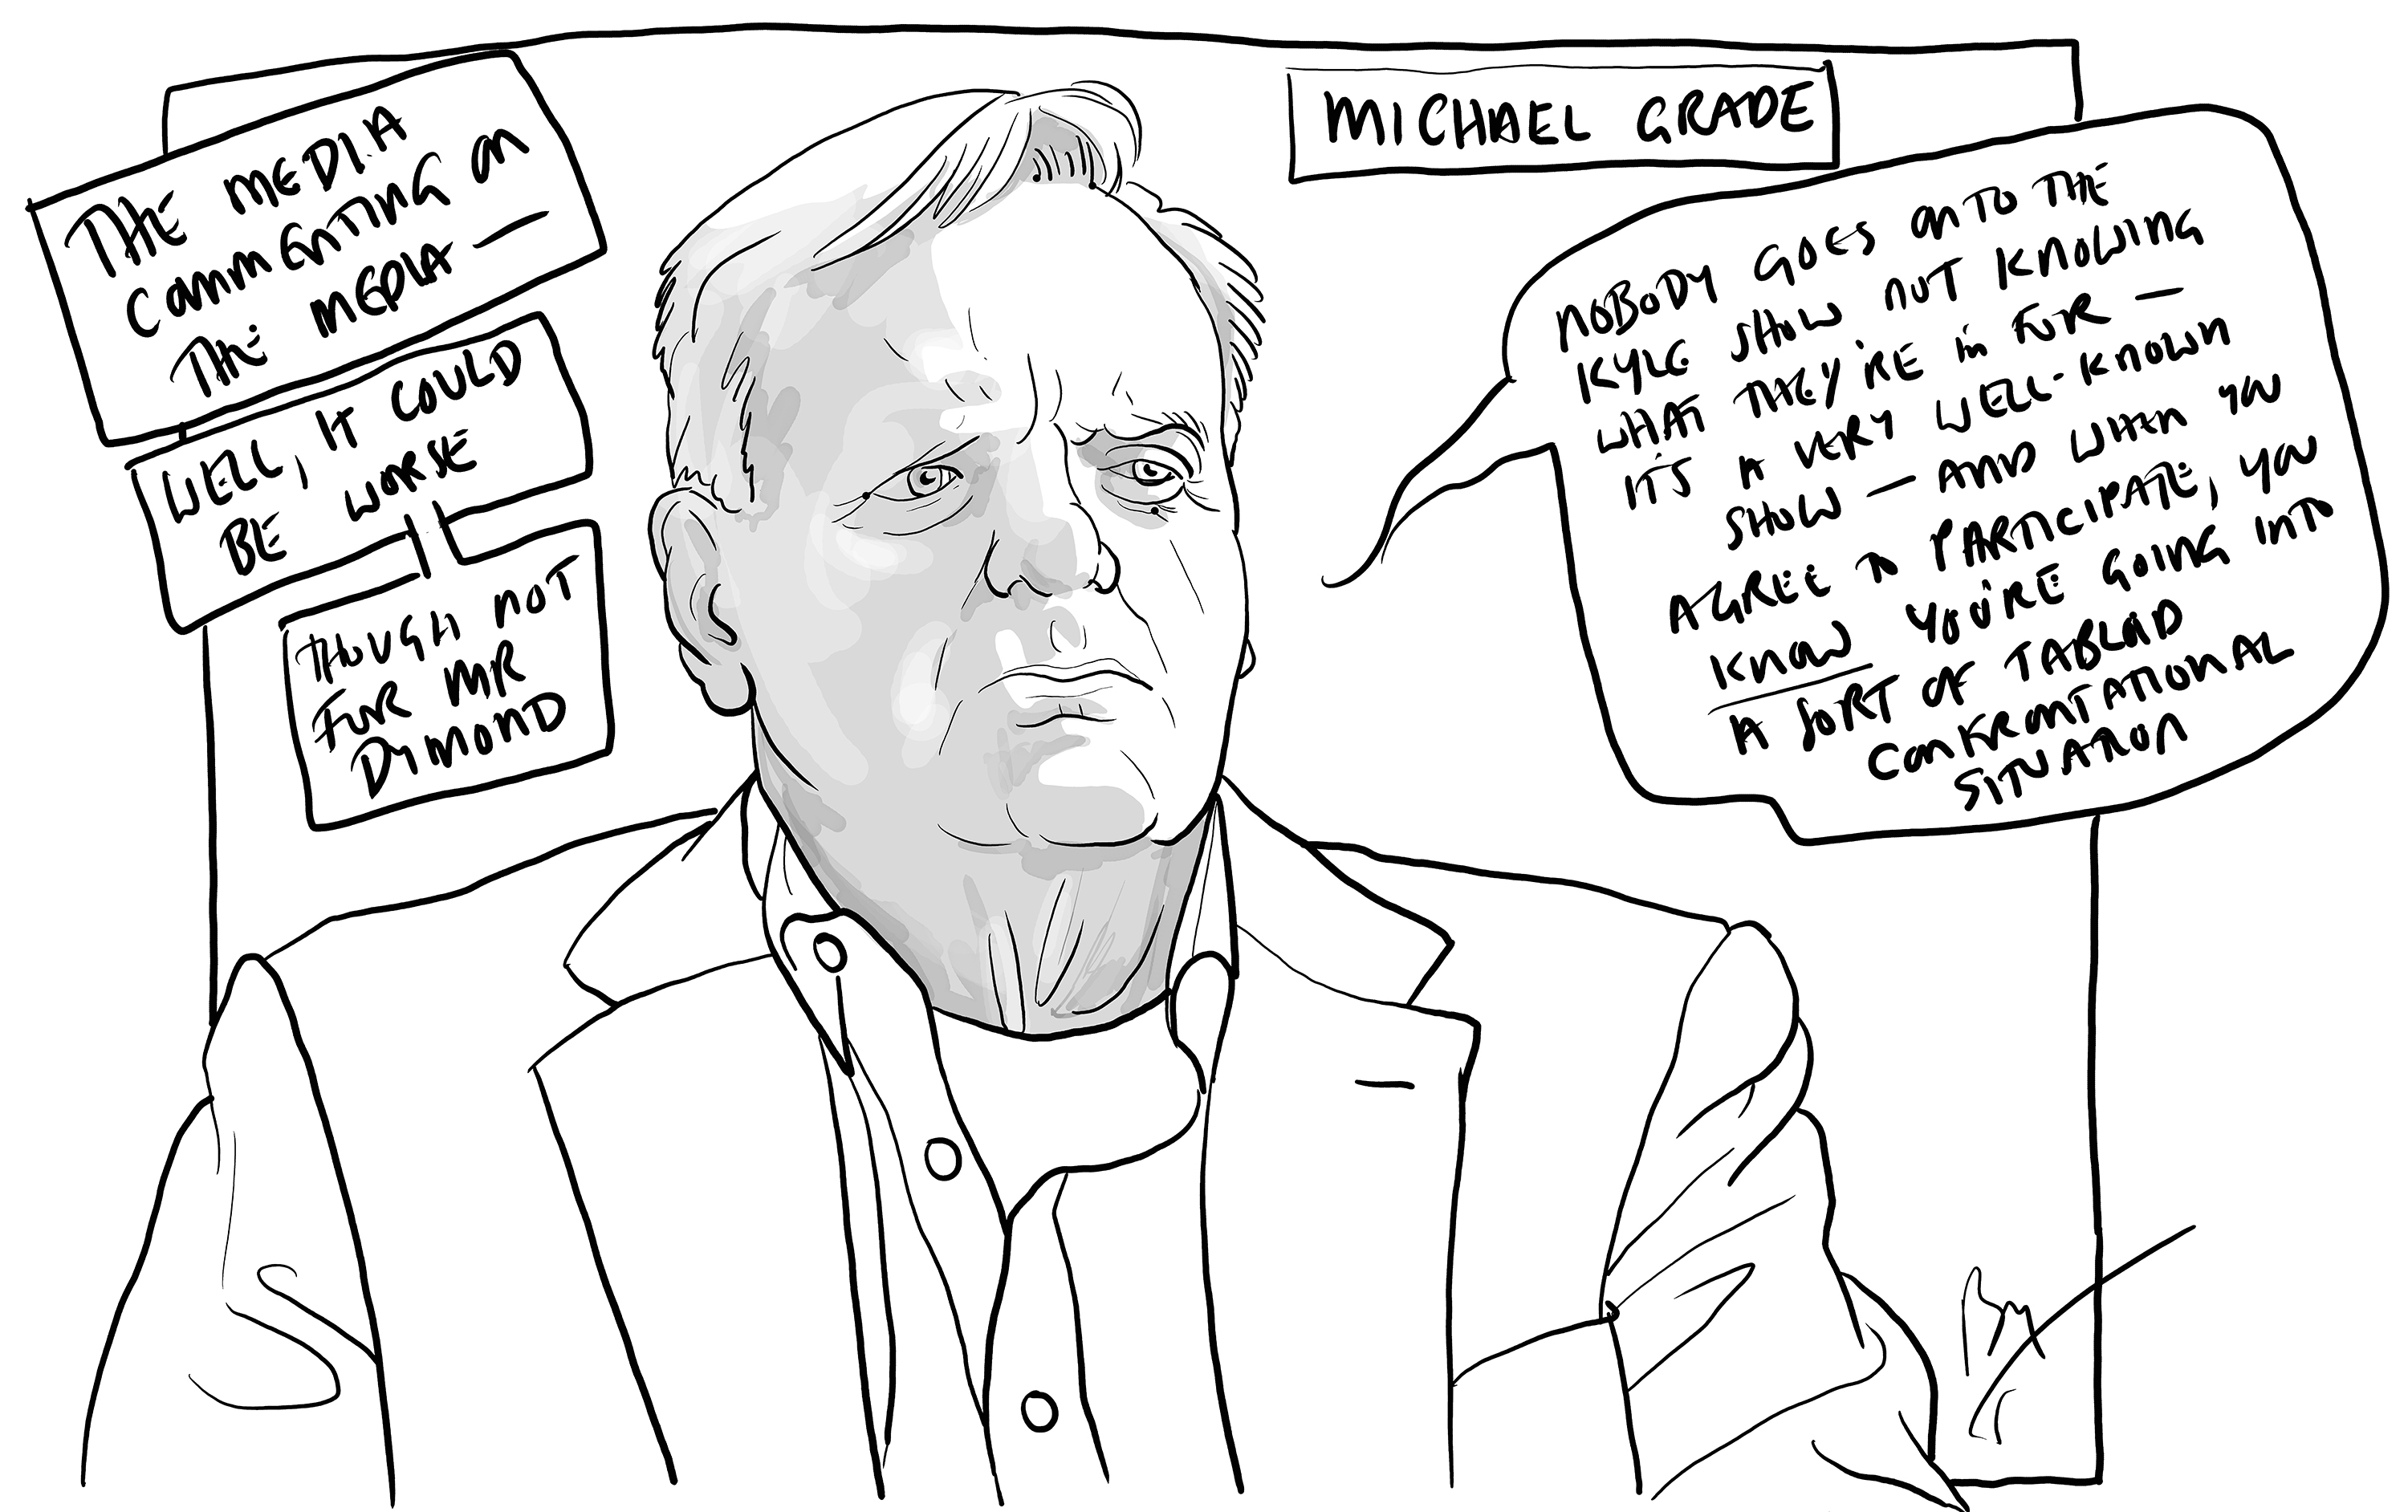 michael grade on Kyle by TIM.jpg